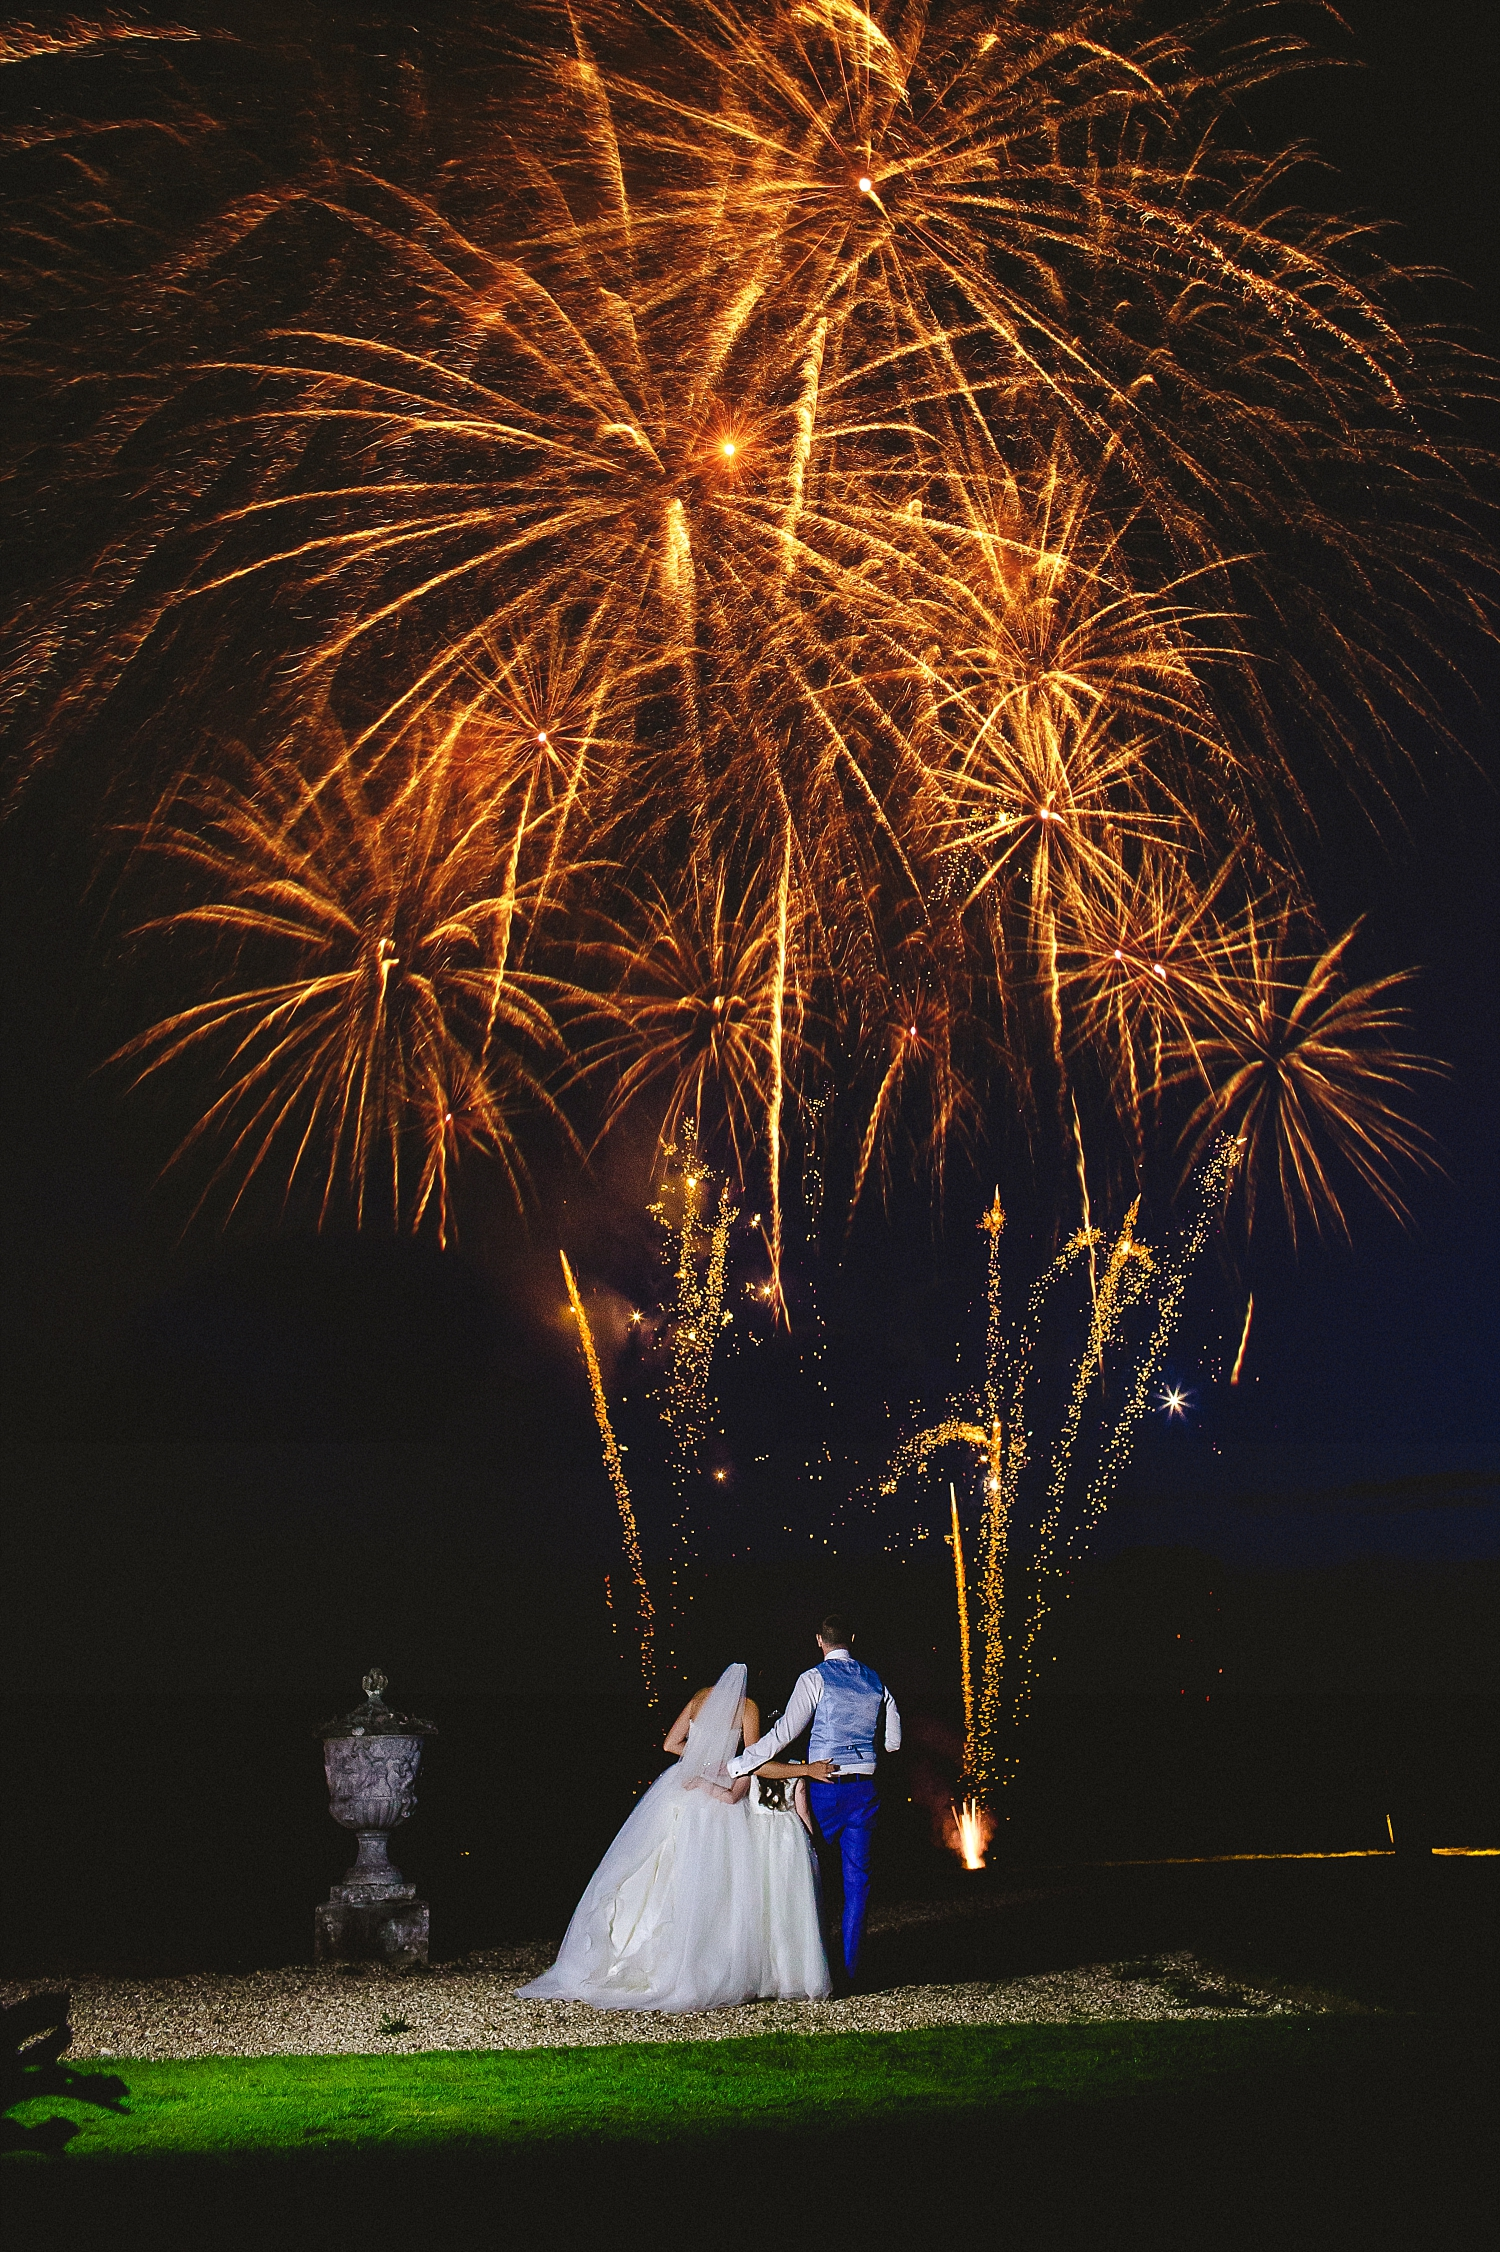 Gosfield Hall Wedding Photographer - Fireworks